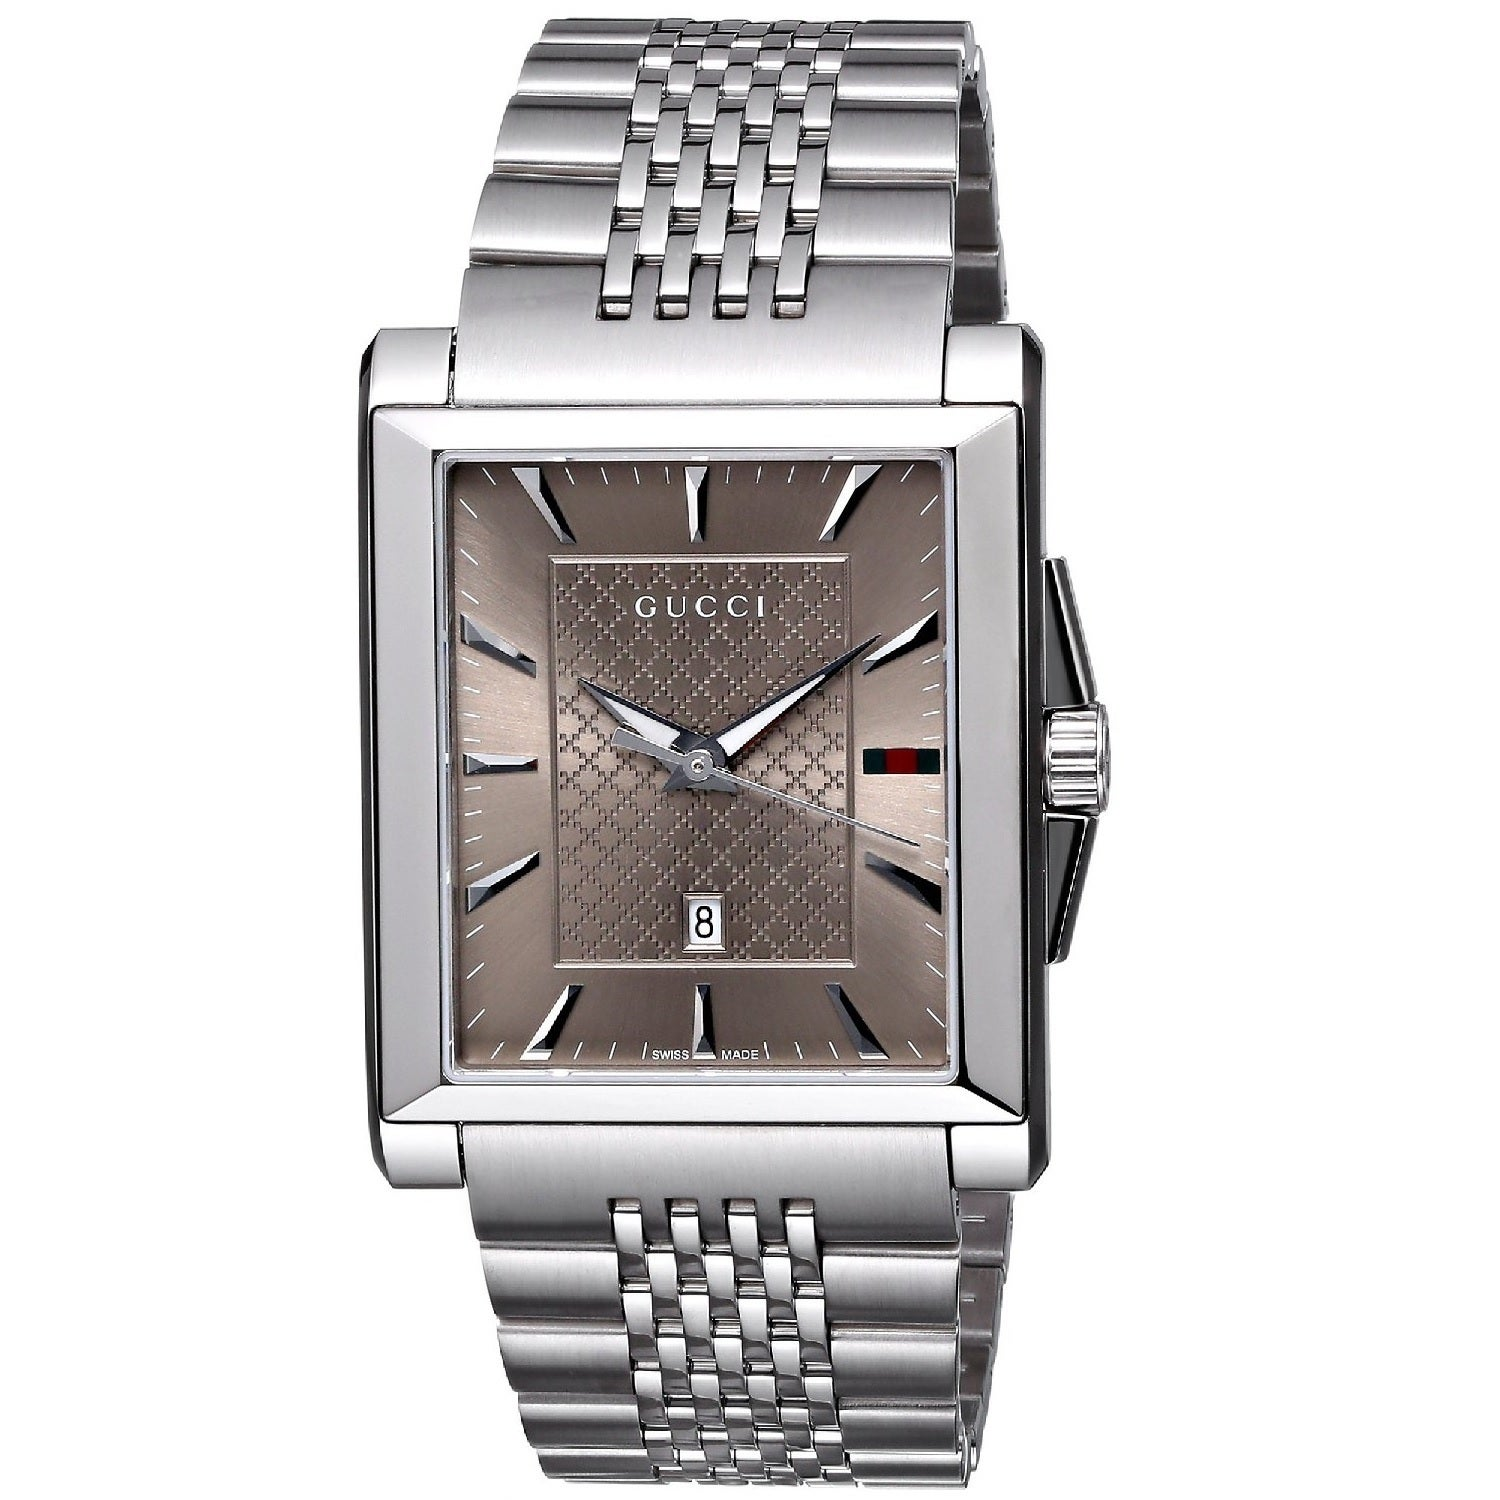 e00fe233497 Shop Gucci Men s YA138402  G-Timeless  Rectangle Swiss Quartz Stainless  Steel Watch - silver - Free Shipping Today - Overstock - 9772588